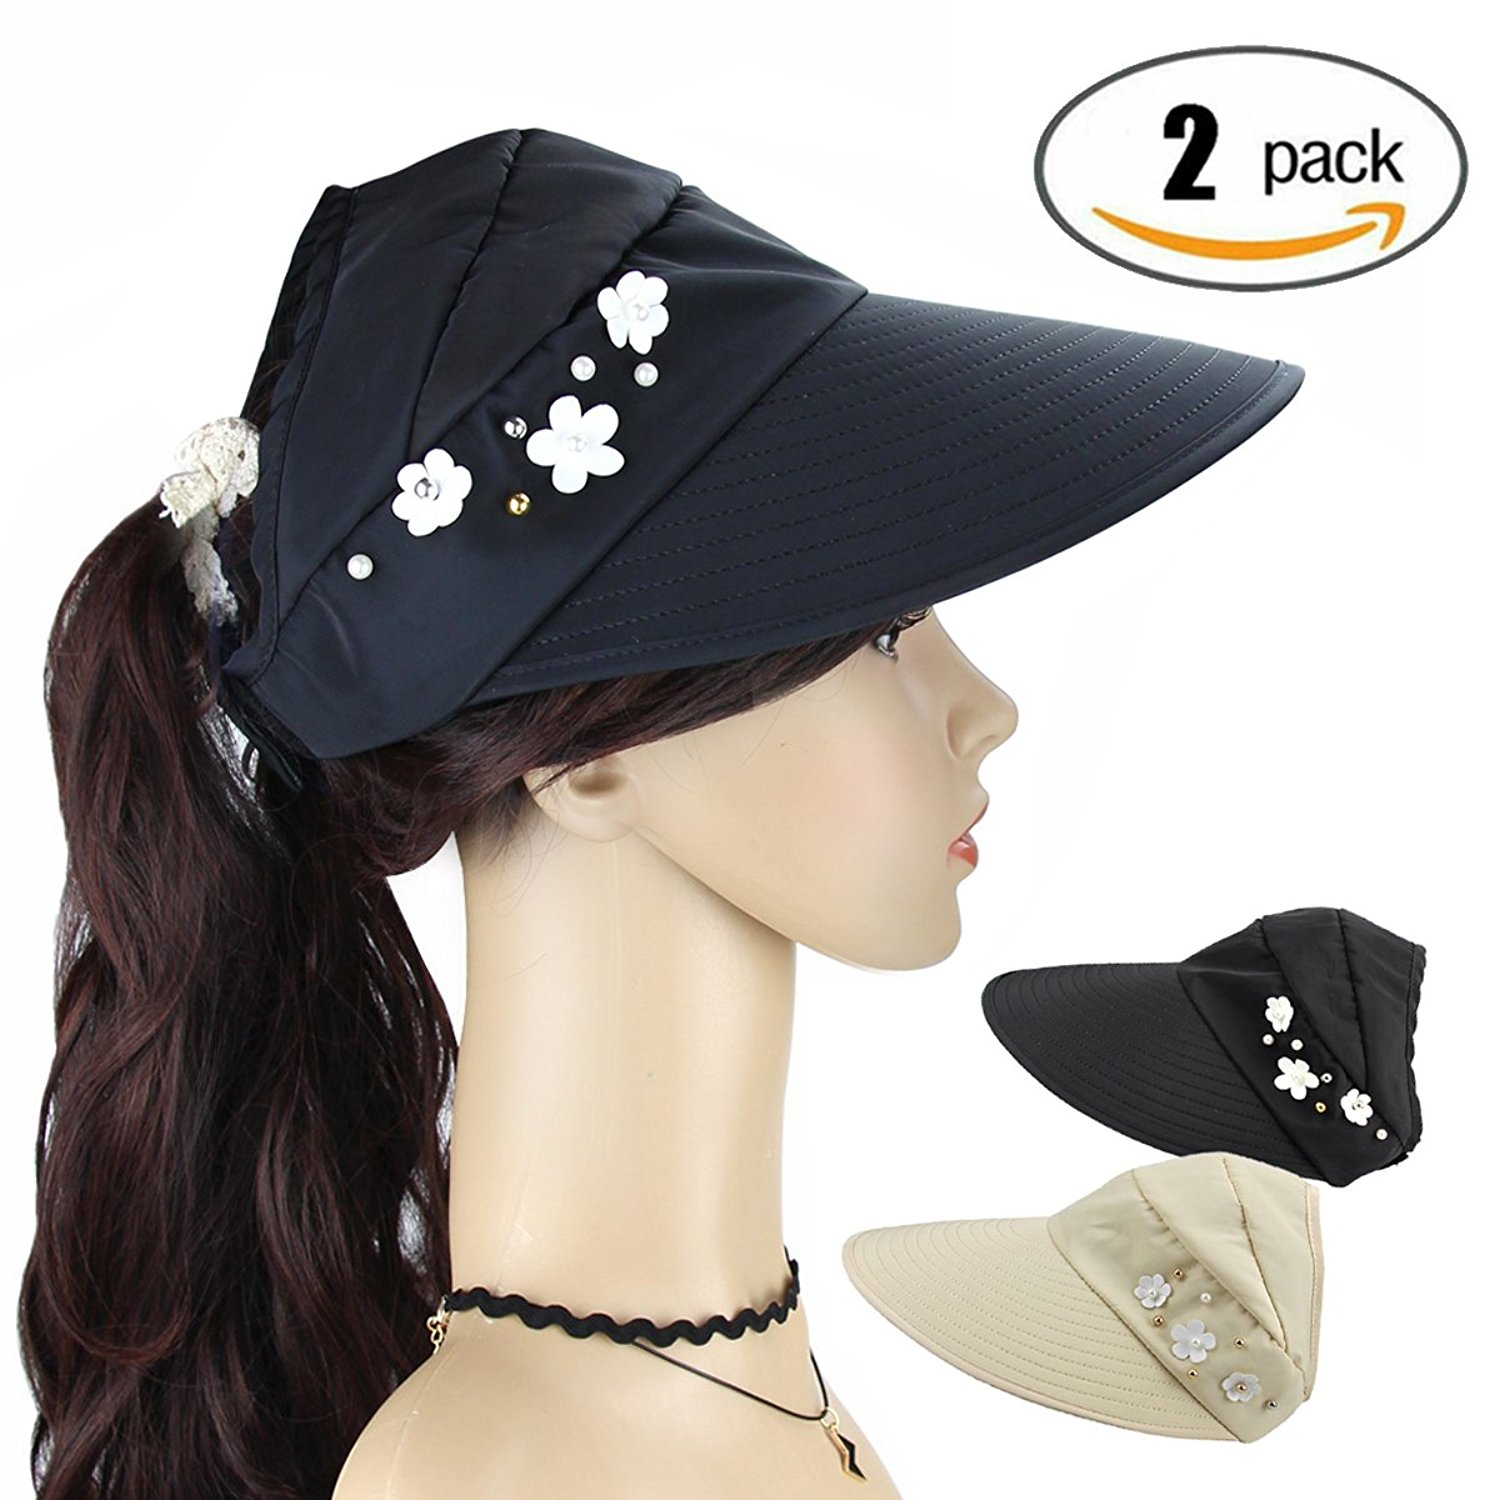 2c401217c0f Get Quotations · Women s Roll Up Topless Wide Brim Visor Cap 2 Packs Summer Sun  Hat Adjustable Foldable Cotton